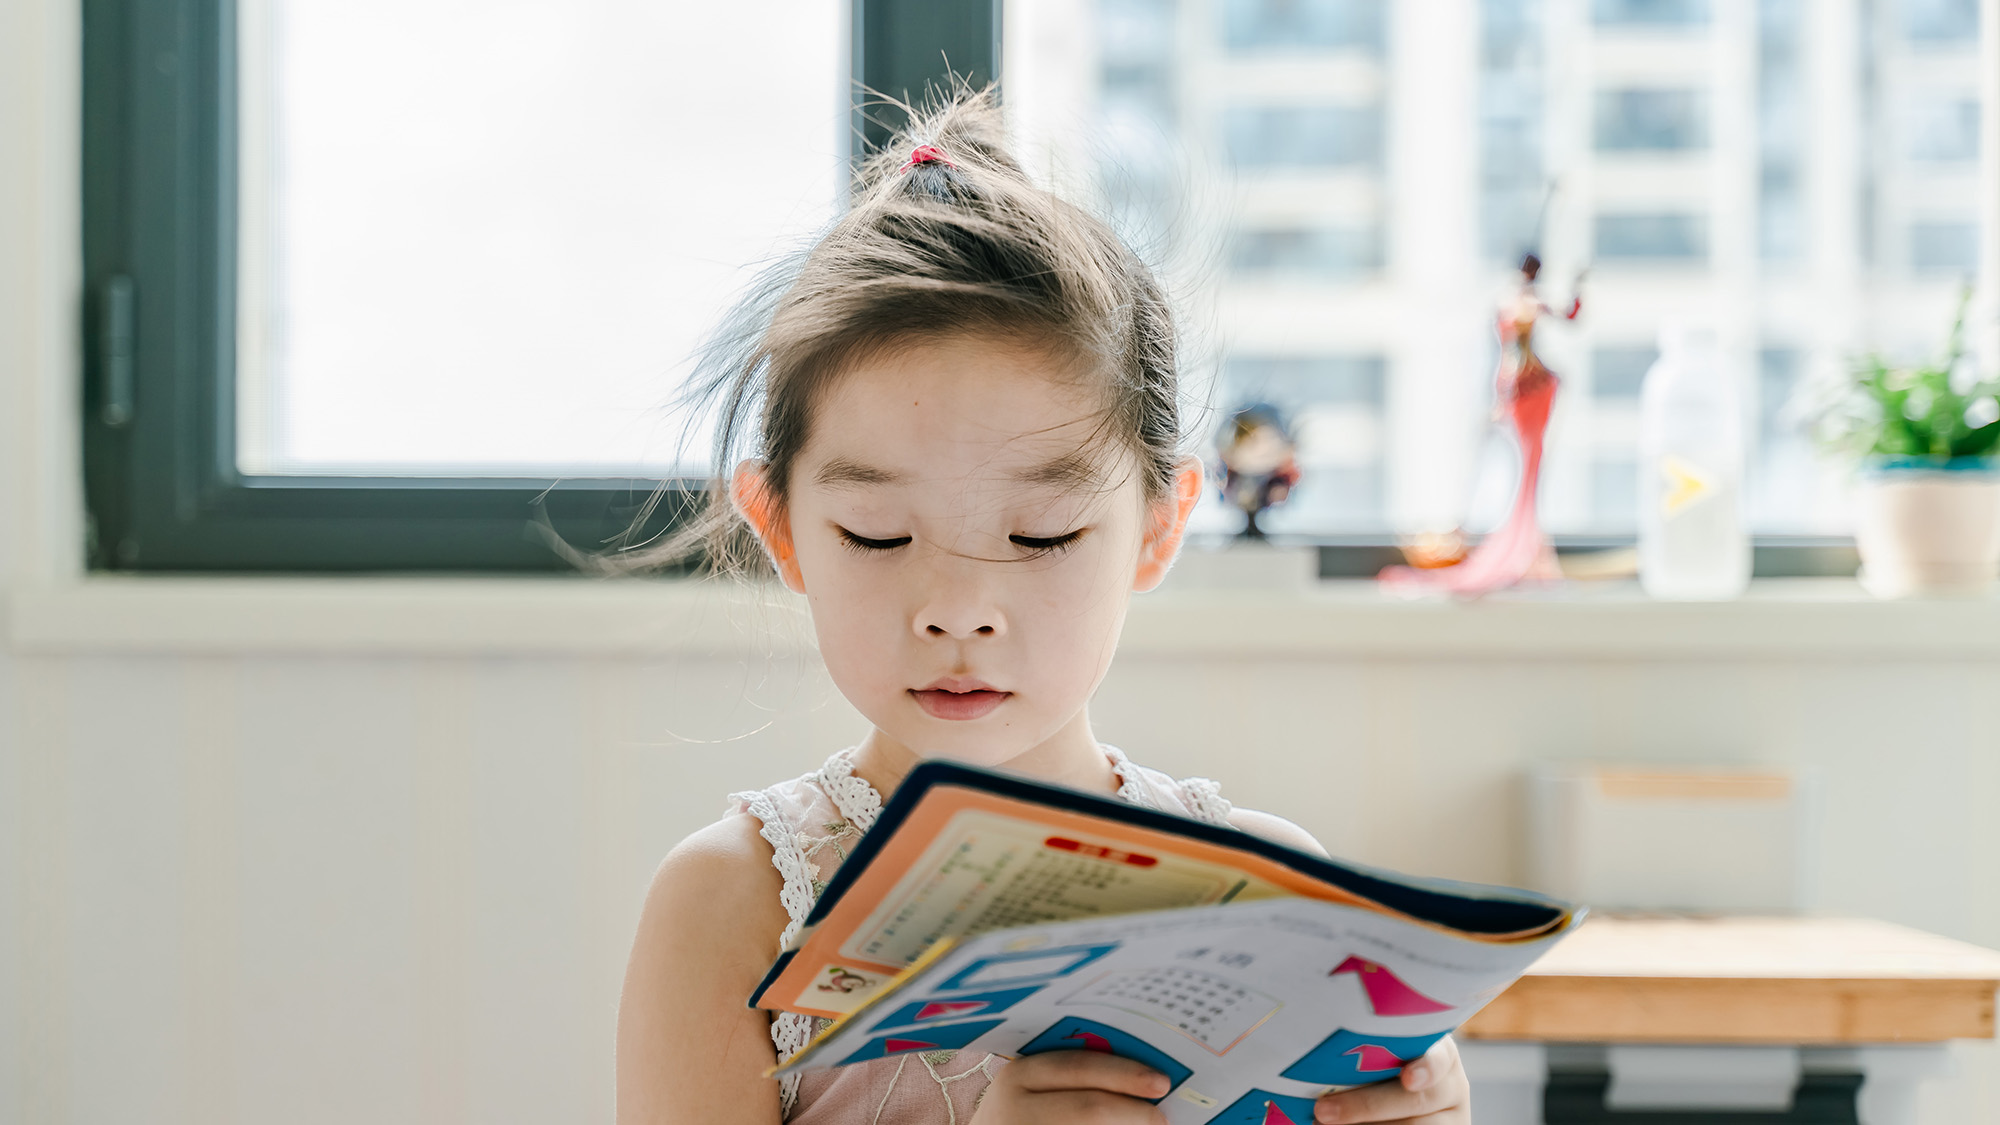 ADHD and worsening memory in children could be associated Photo by Jerry Wang on Unsplash